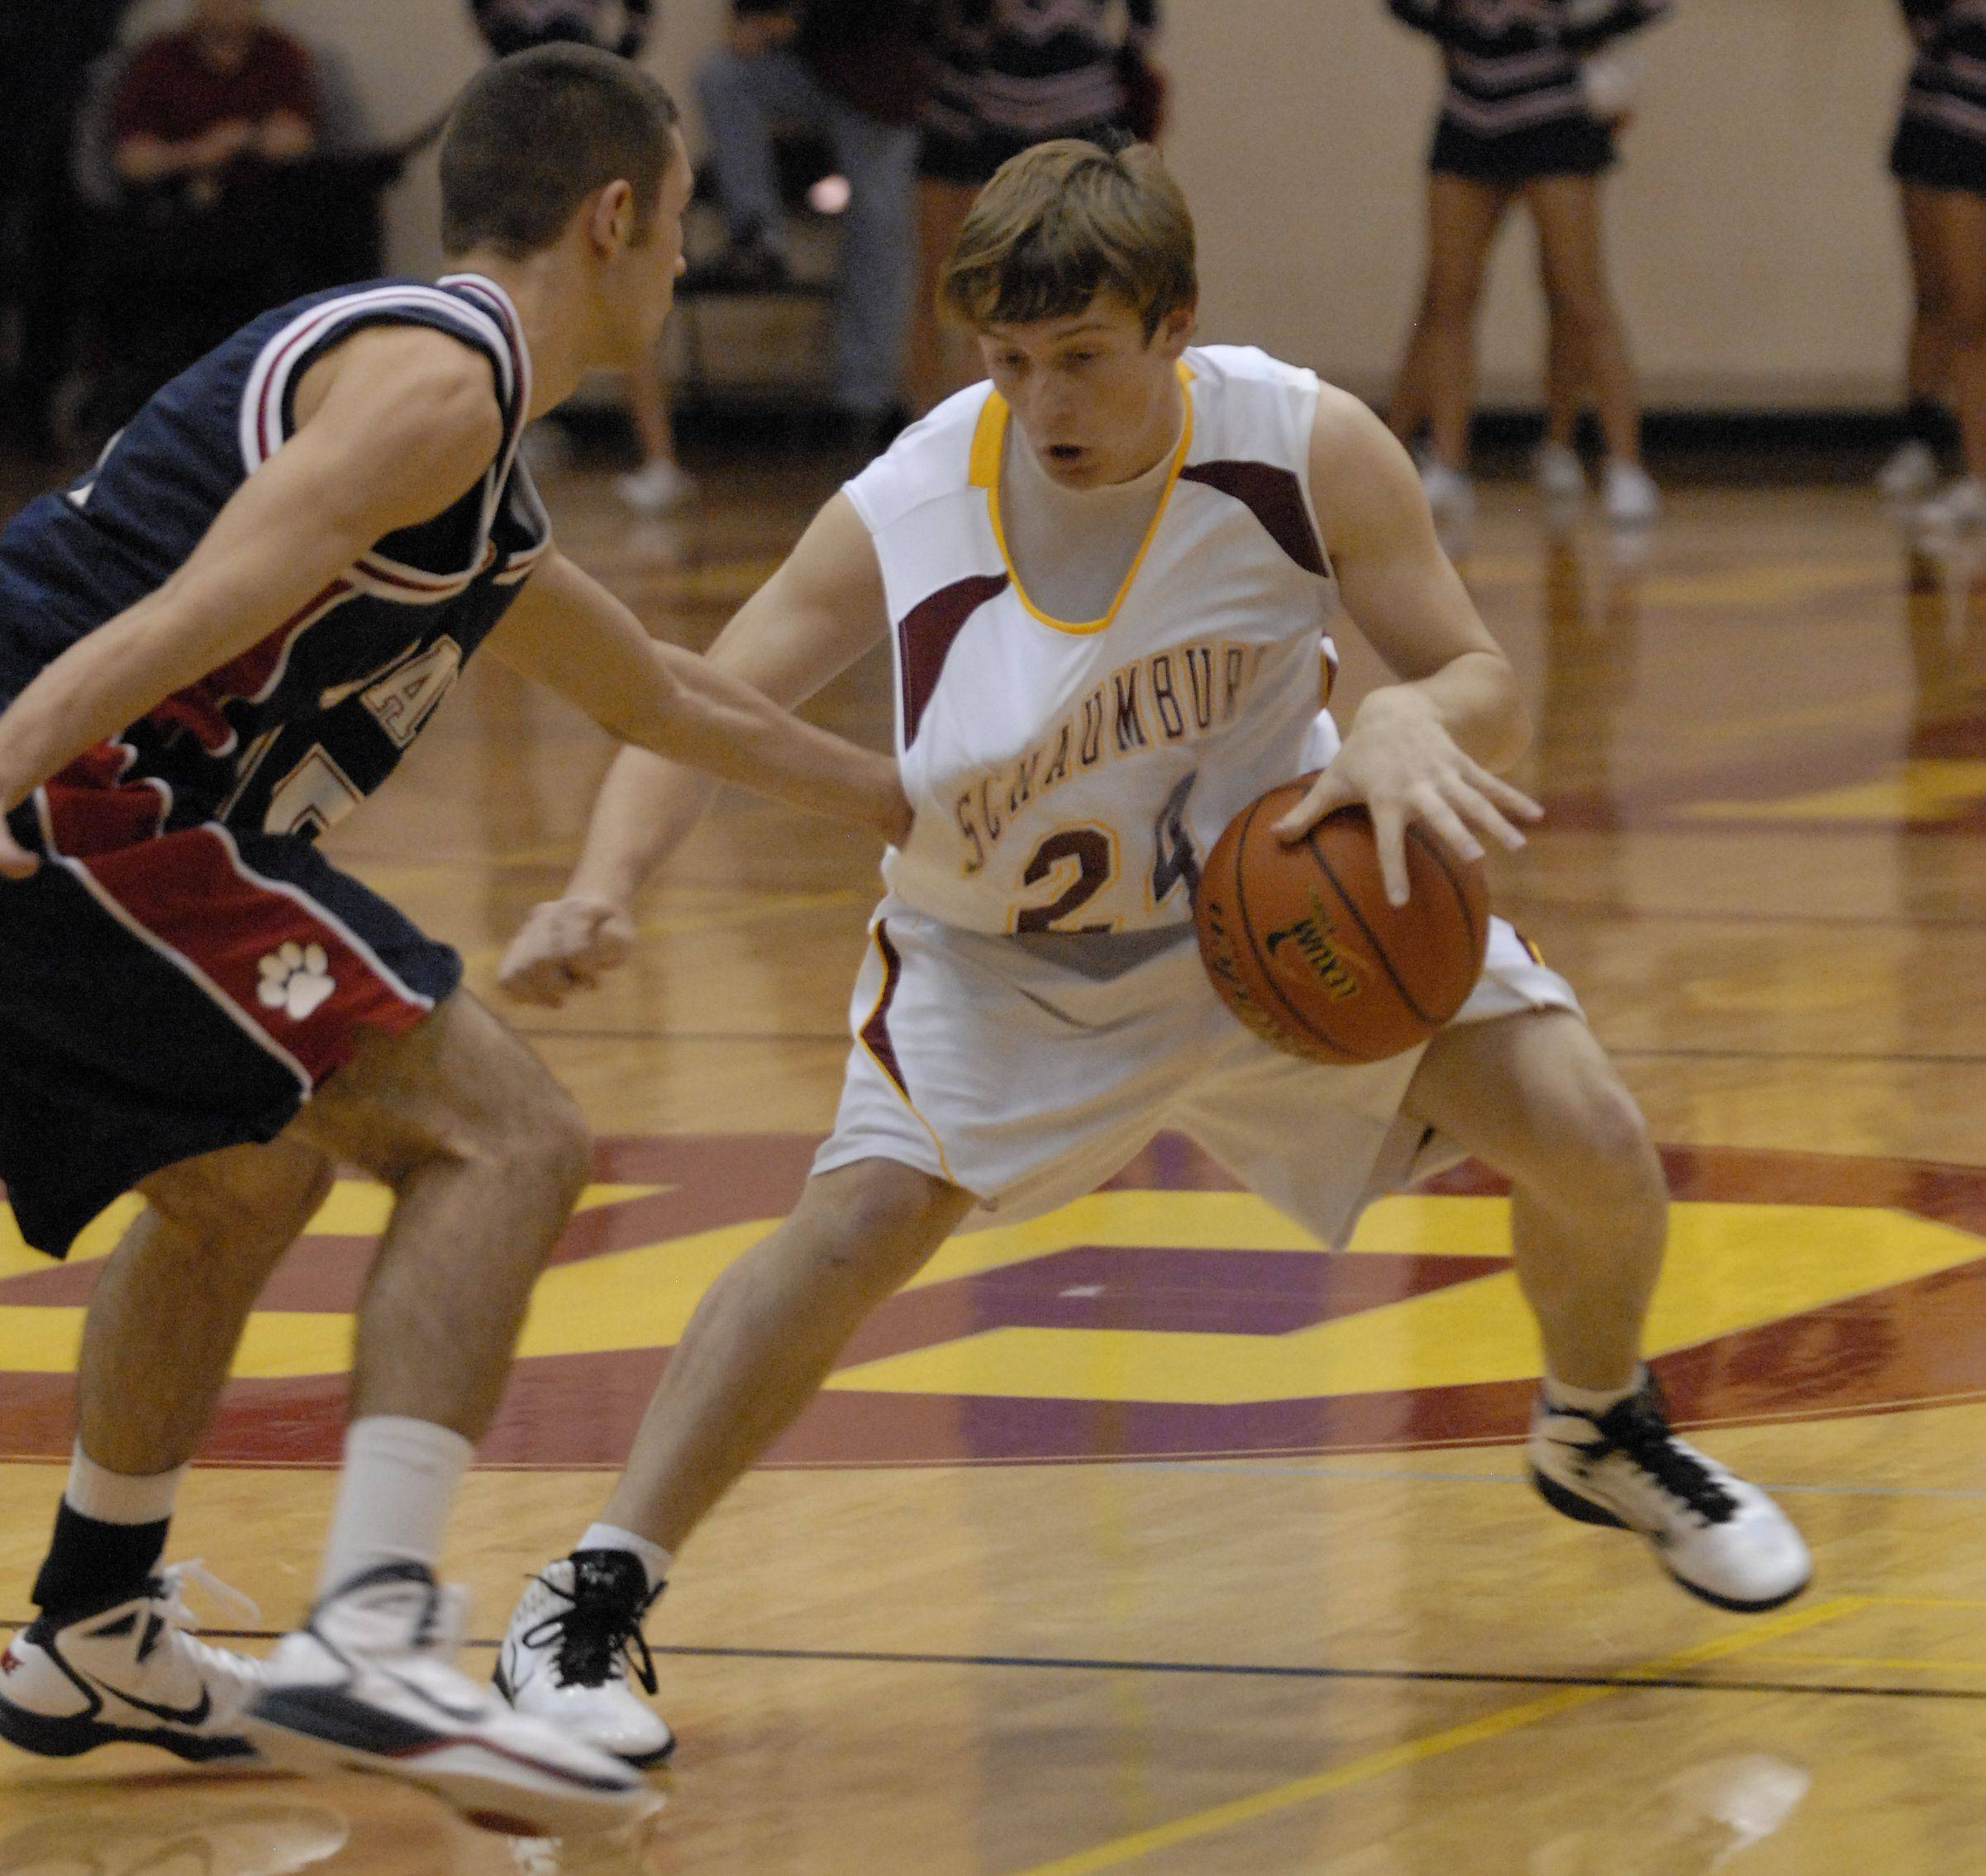 Images from the Schaumburg vs. Conant boys basketball game in Schaumburg on Friday, December 3rd.